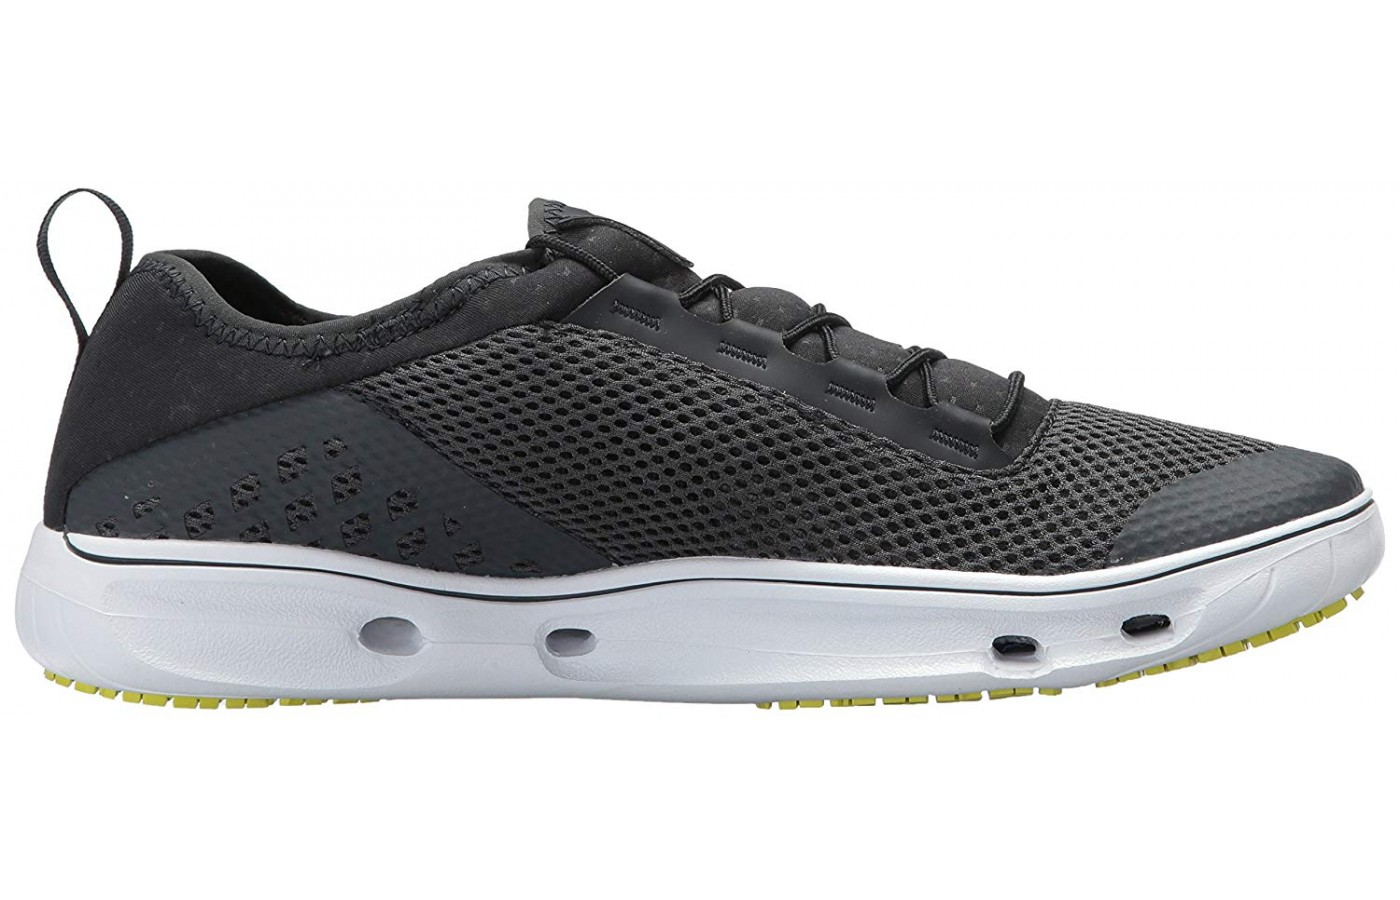 The midsole features holes that aid in draining moosture.